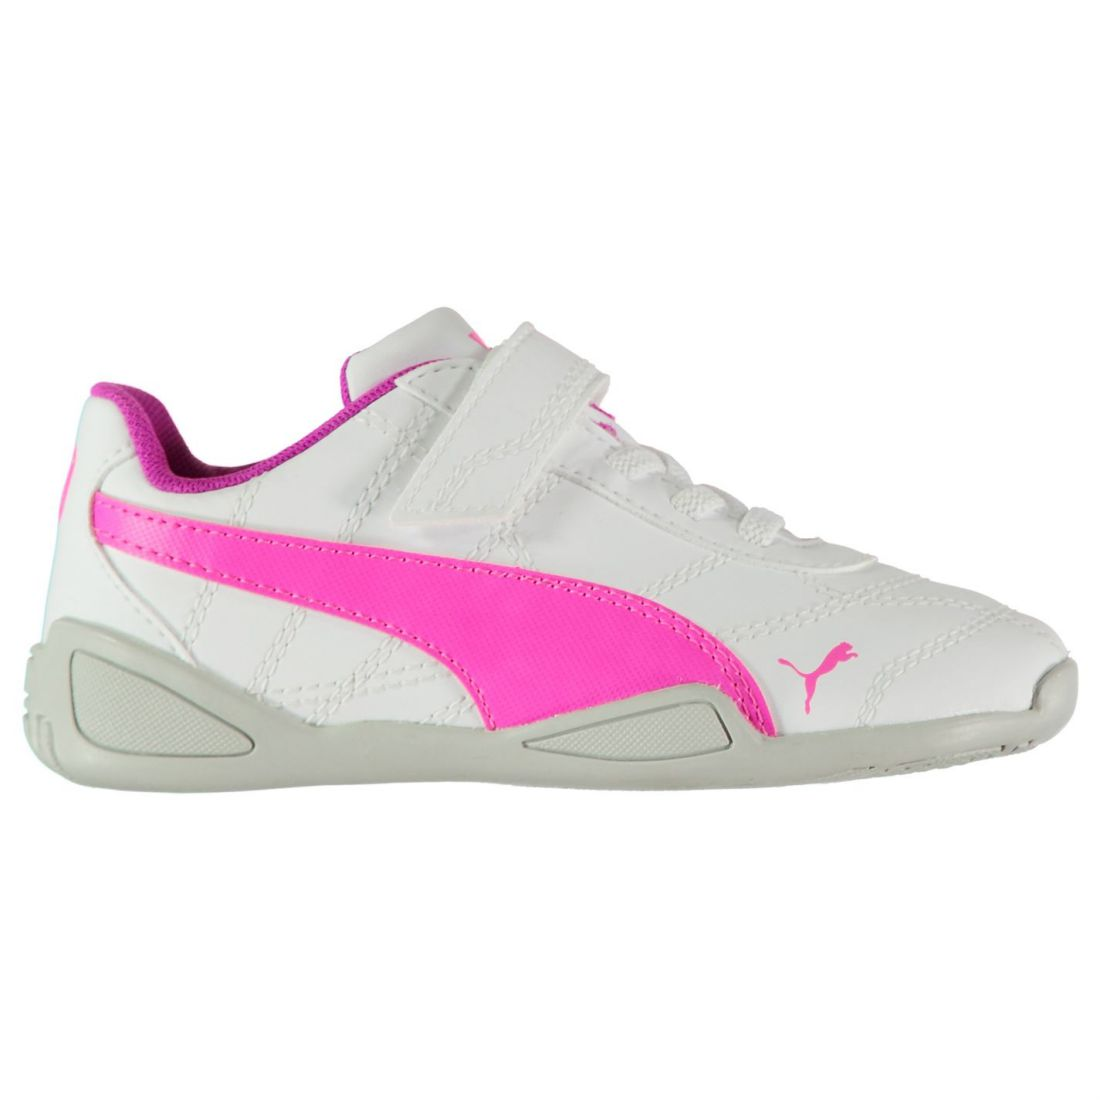 Details about Puma Kids Tune Cat 3 Trainers Infant Girls Shoes Contrasting  Touch and Close eb0db6a89391e